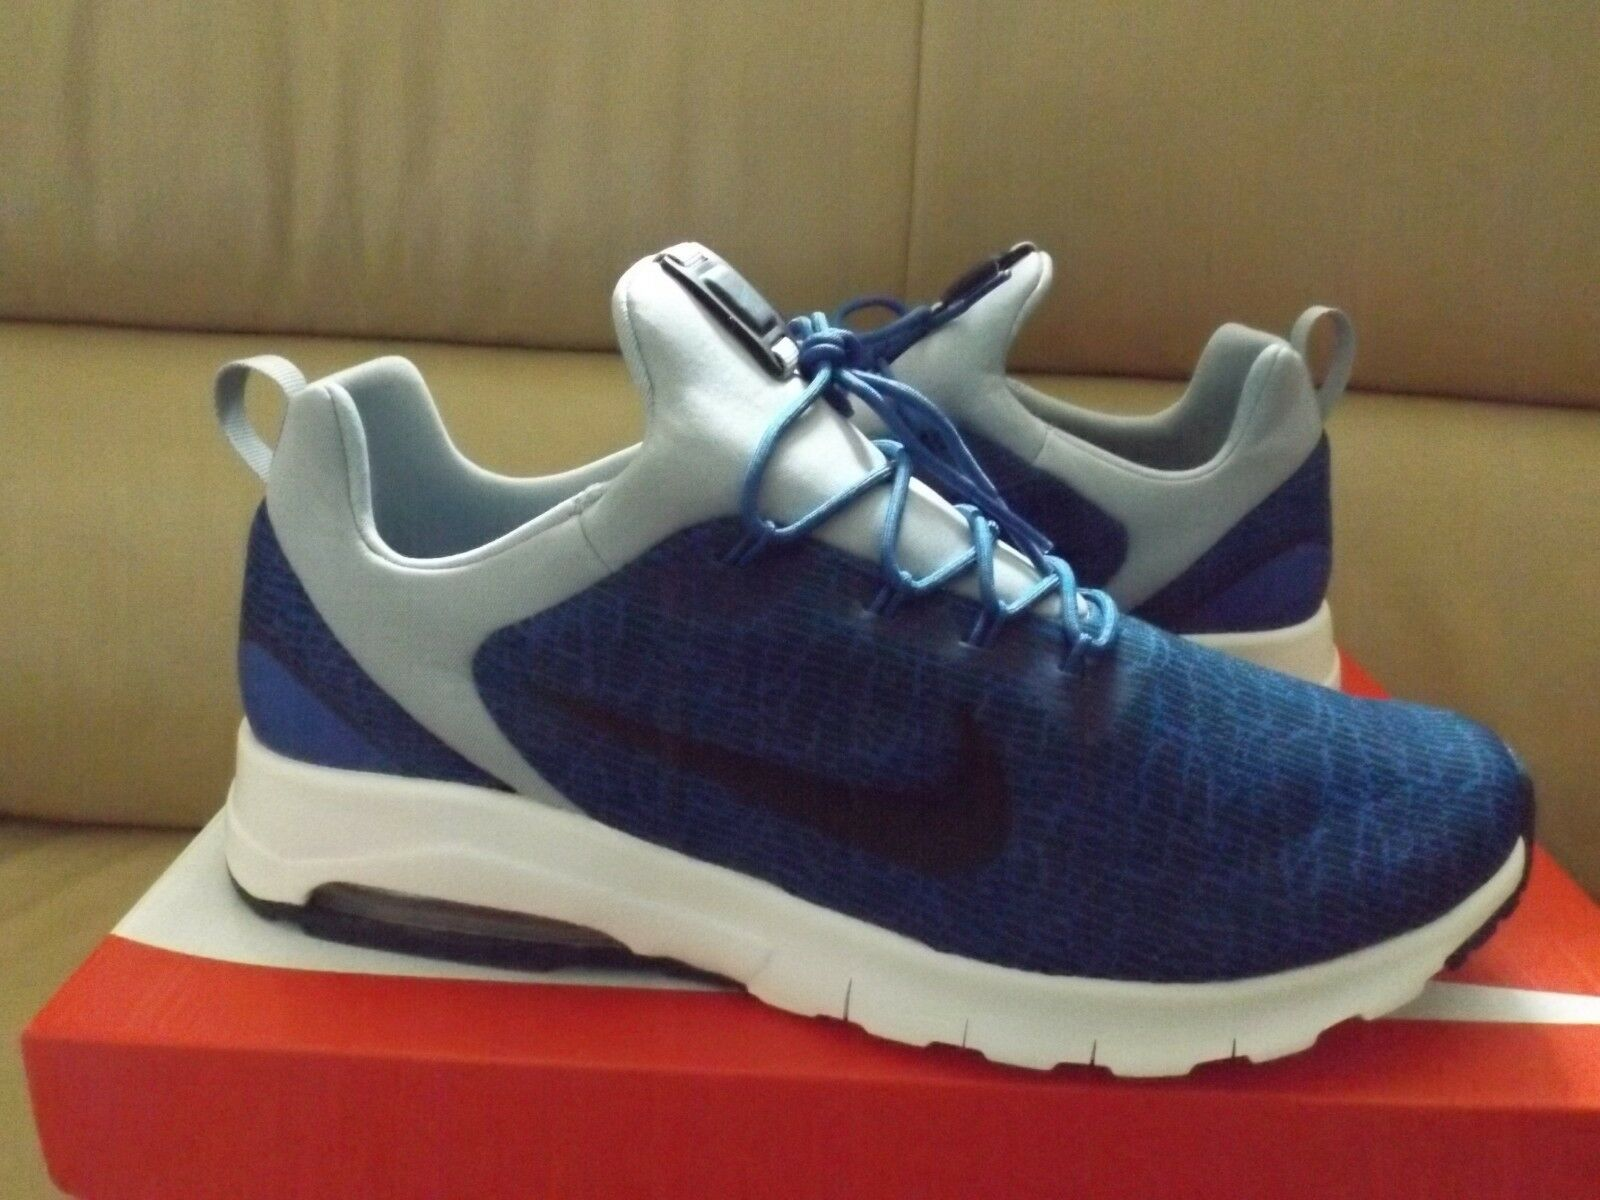 Nike Air Max Motion Racer Men's Running shoes Size 11.5 bluee Black 916771 400